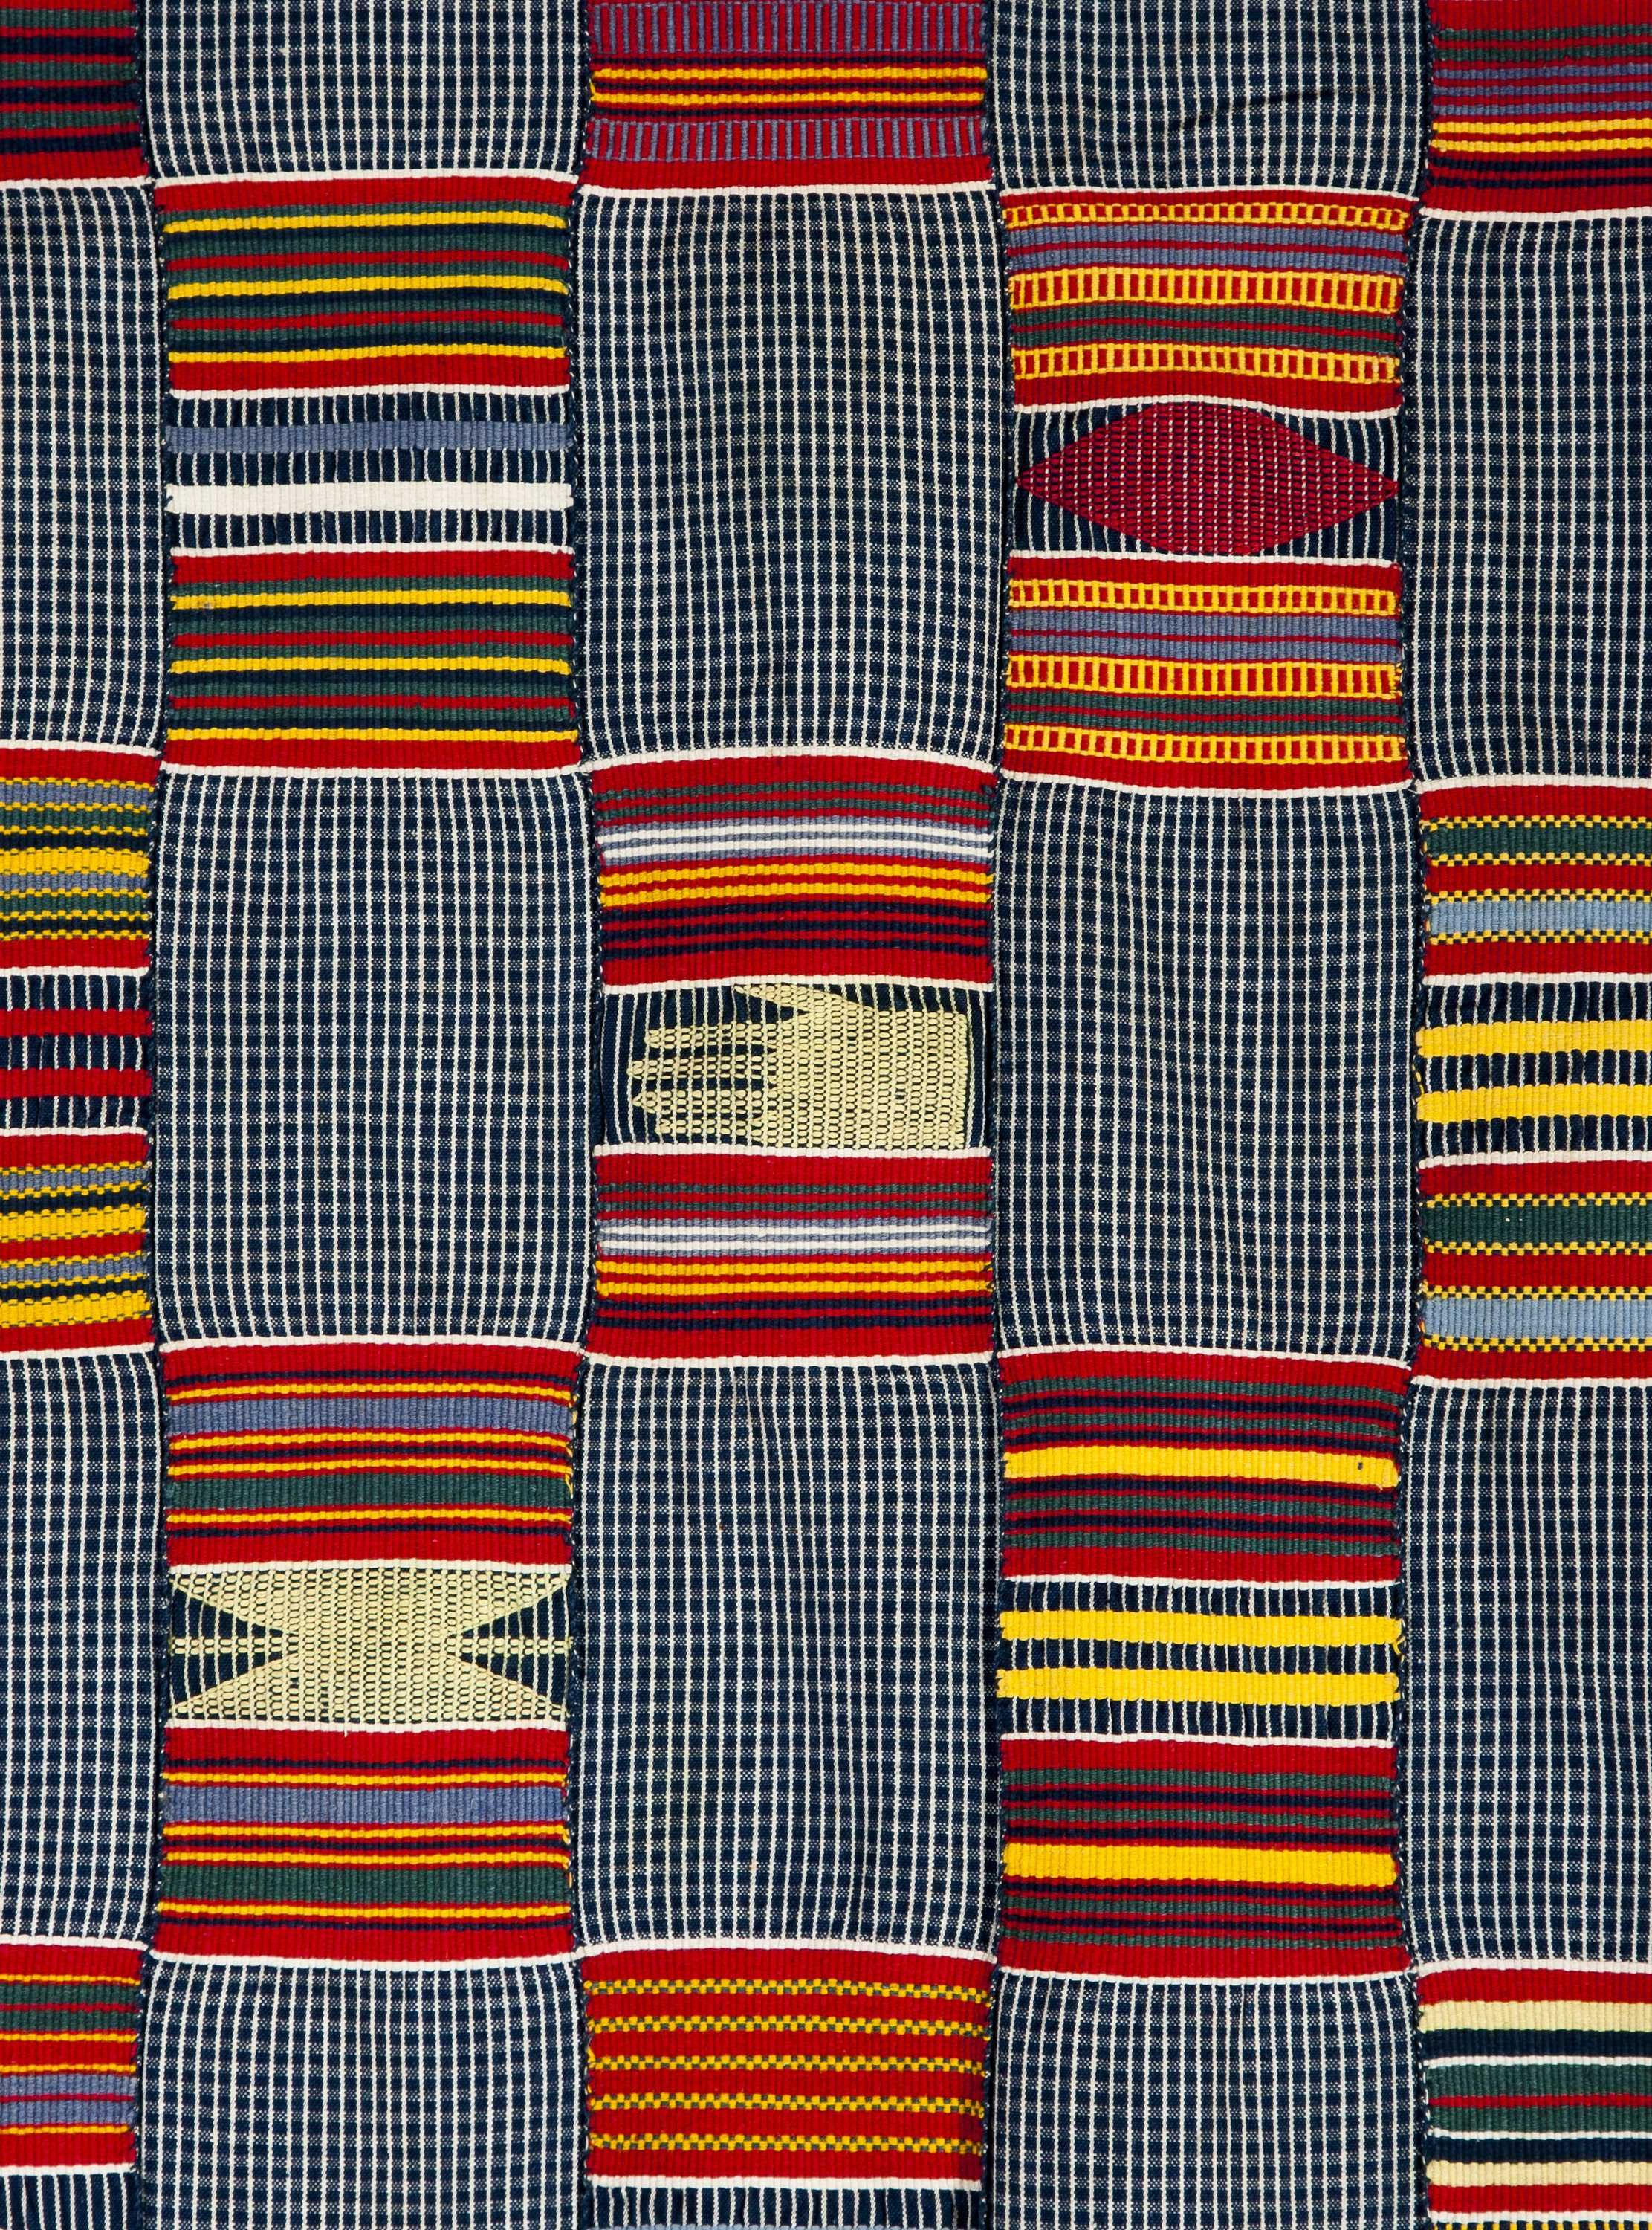 Africa | Details from a strip woven cloth from the Ewe people of ...